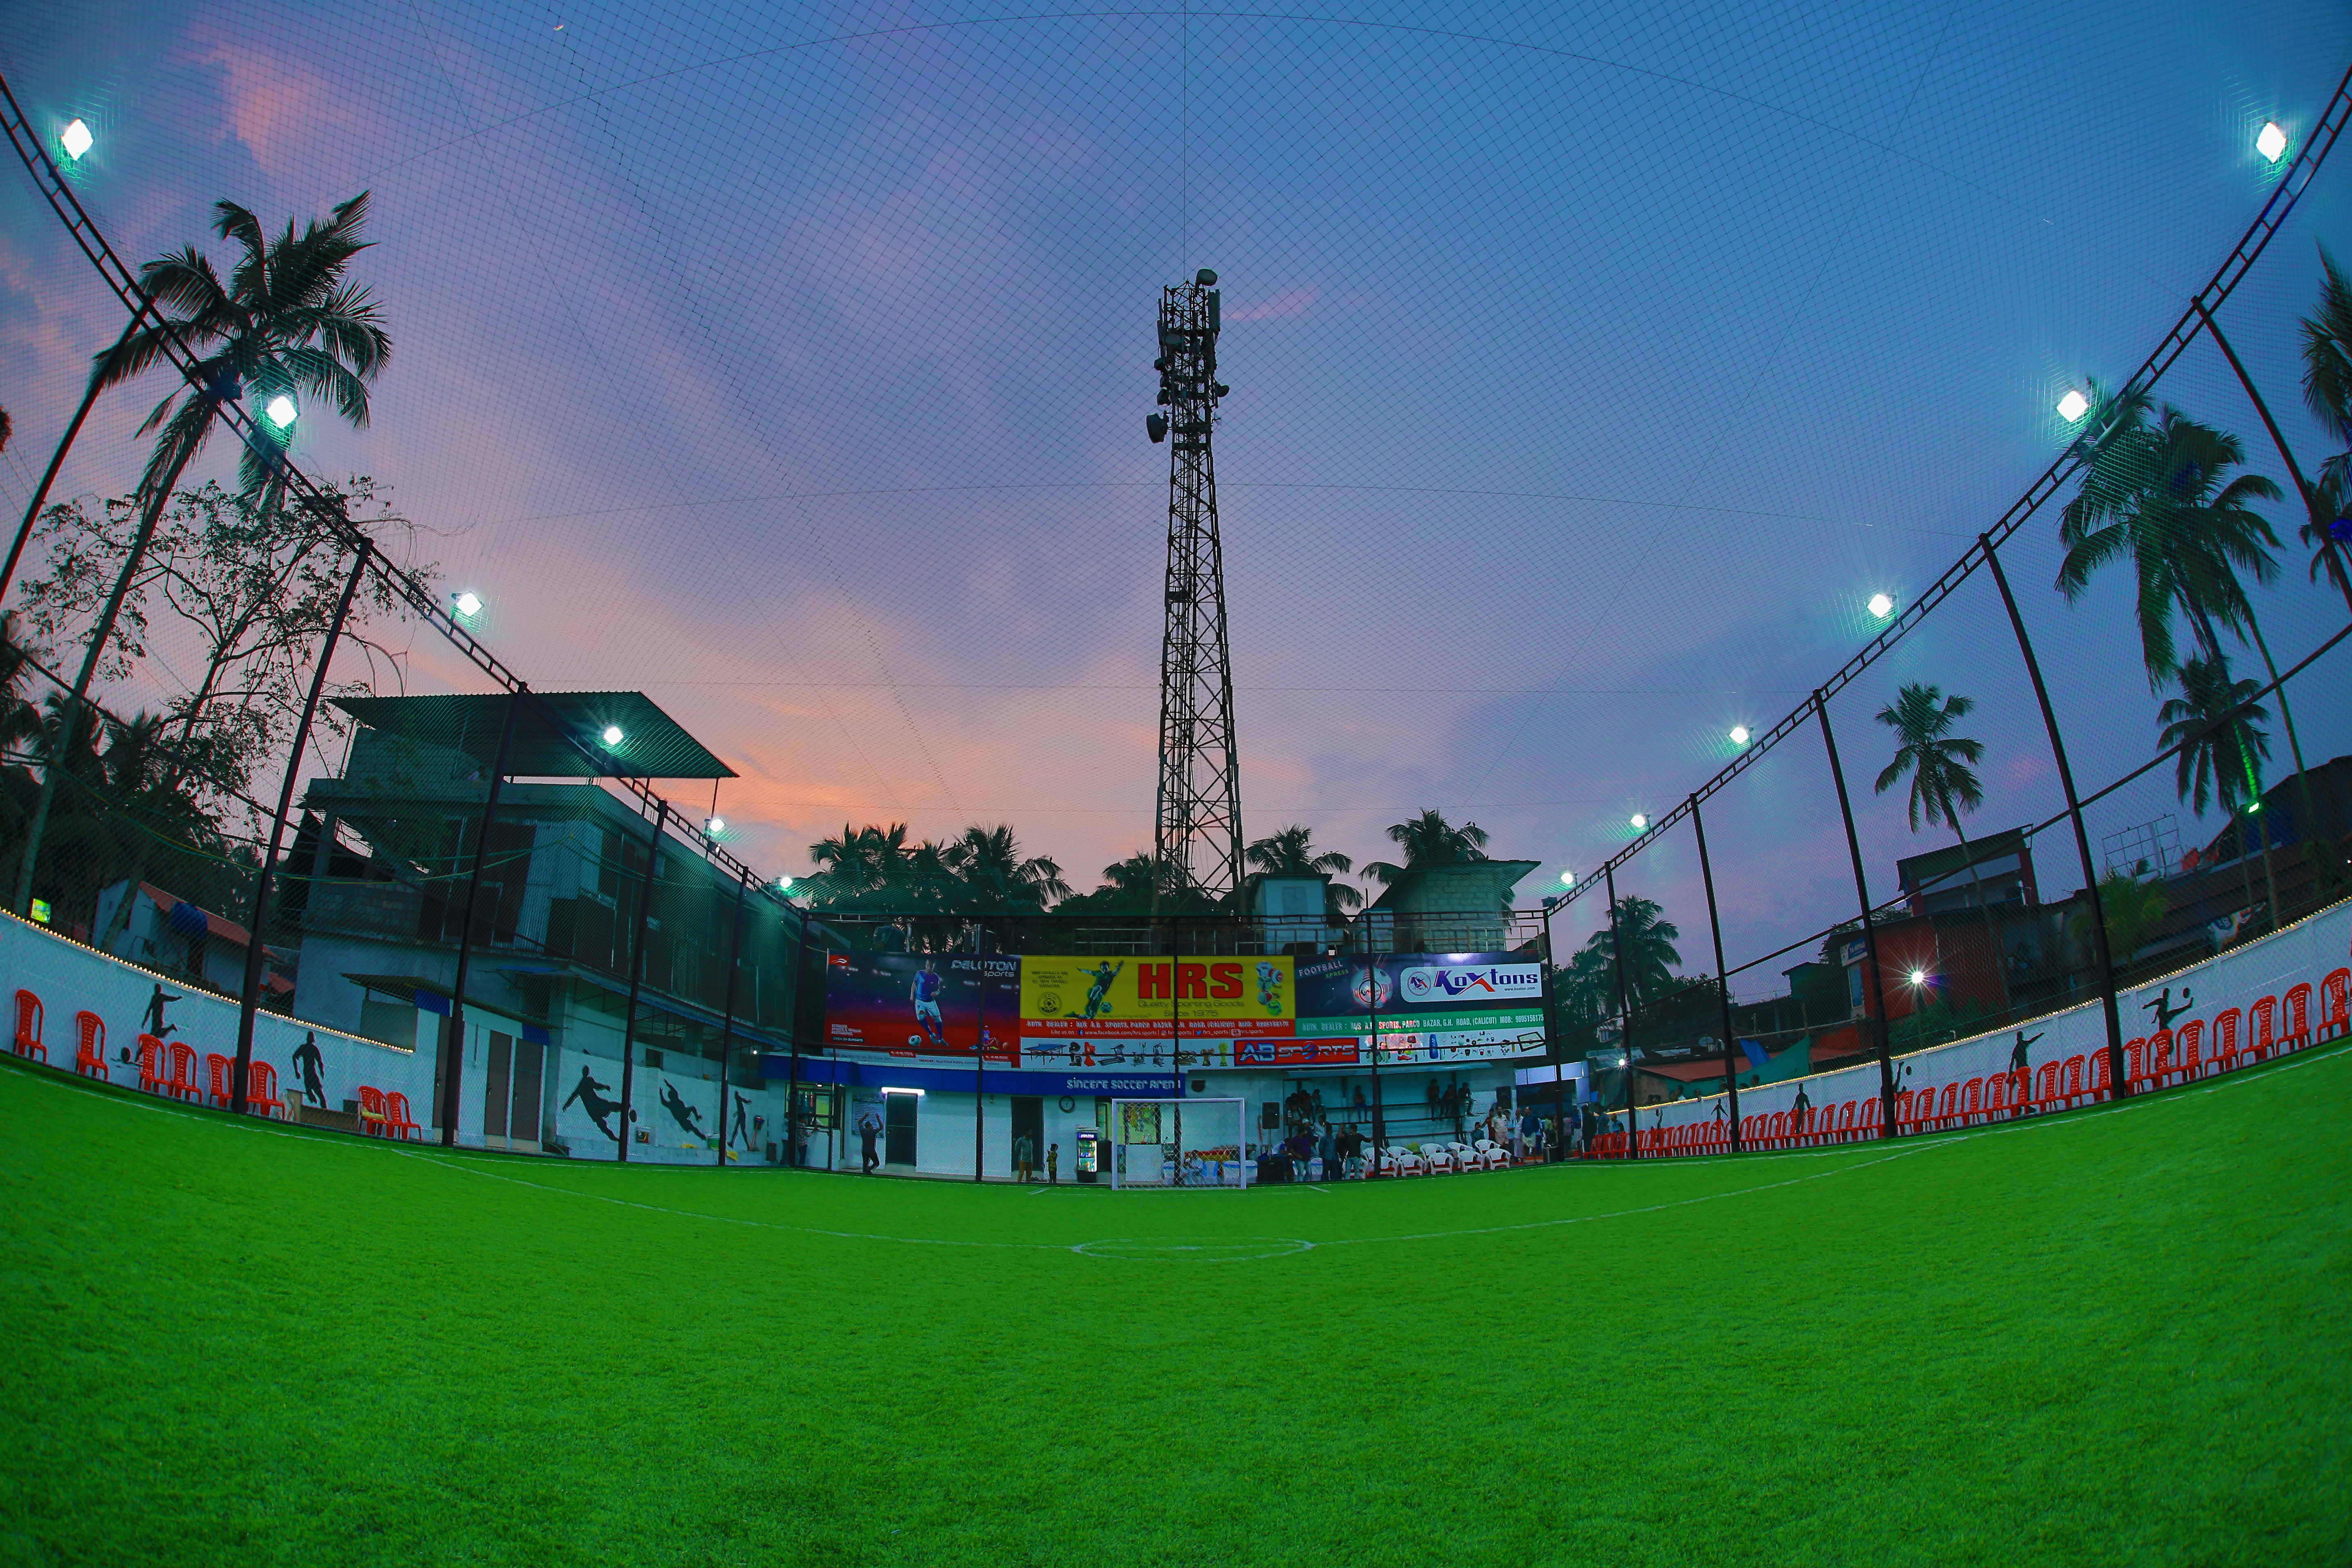 playspots ,play sports, playsports, calicut, kozhikode ,malappuram, playspotsapp, playspots app, turf booking app, turf booking application, football turf booking app, football turf booking application,turfs in calicut, turfs in malappuram